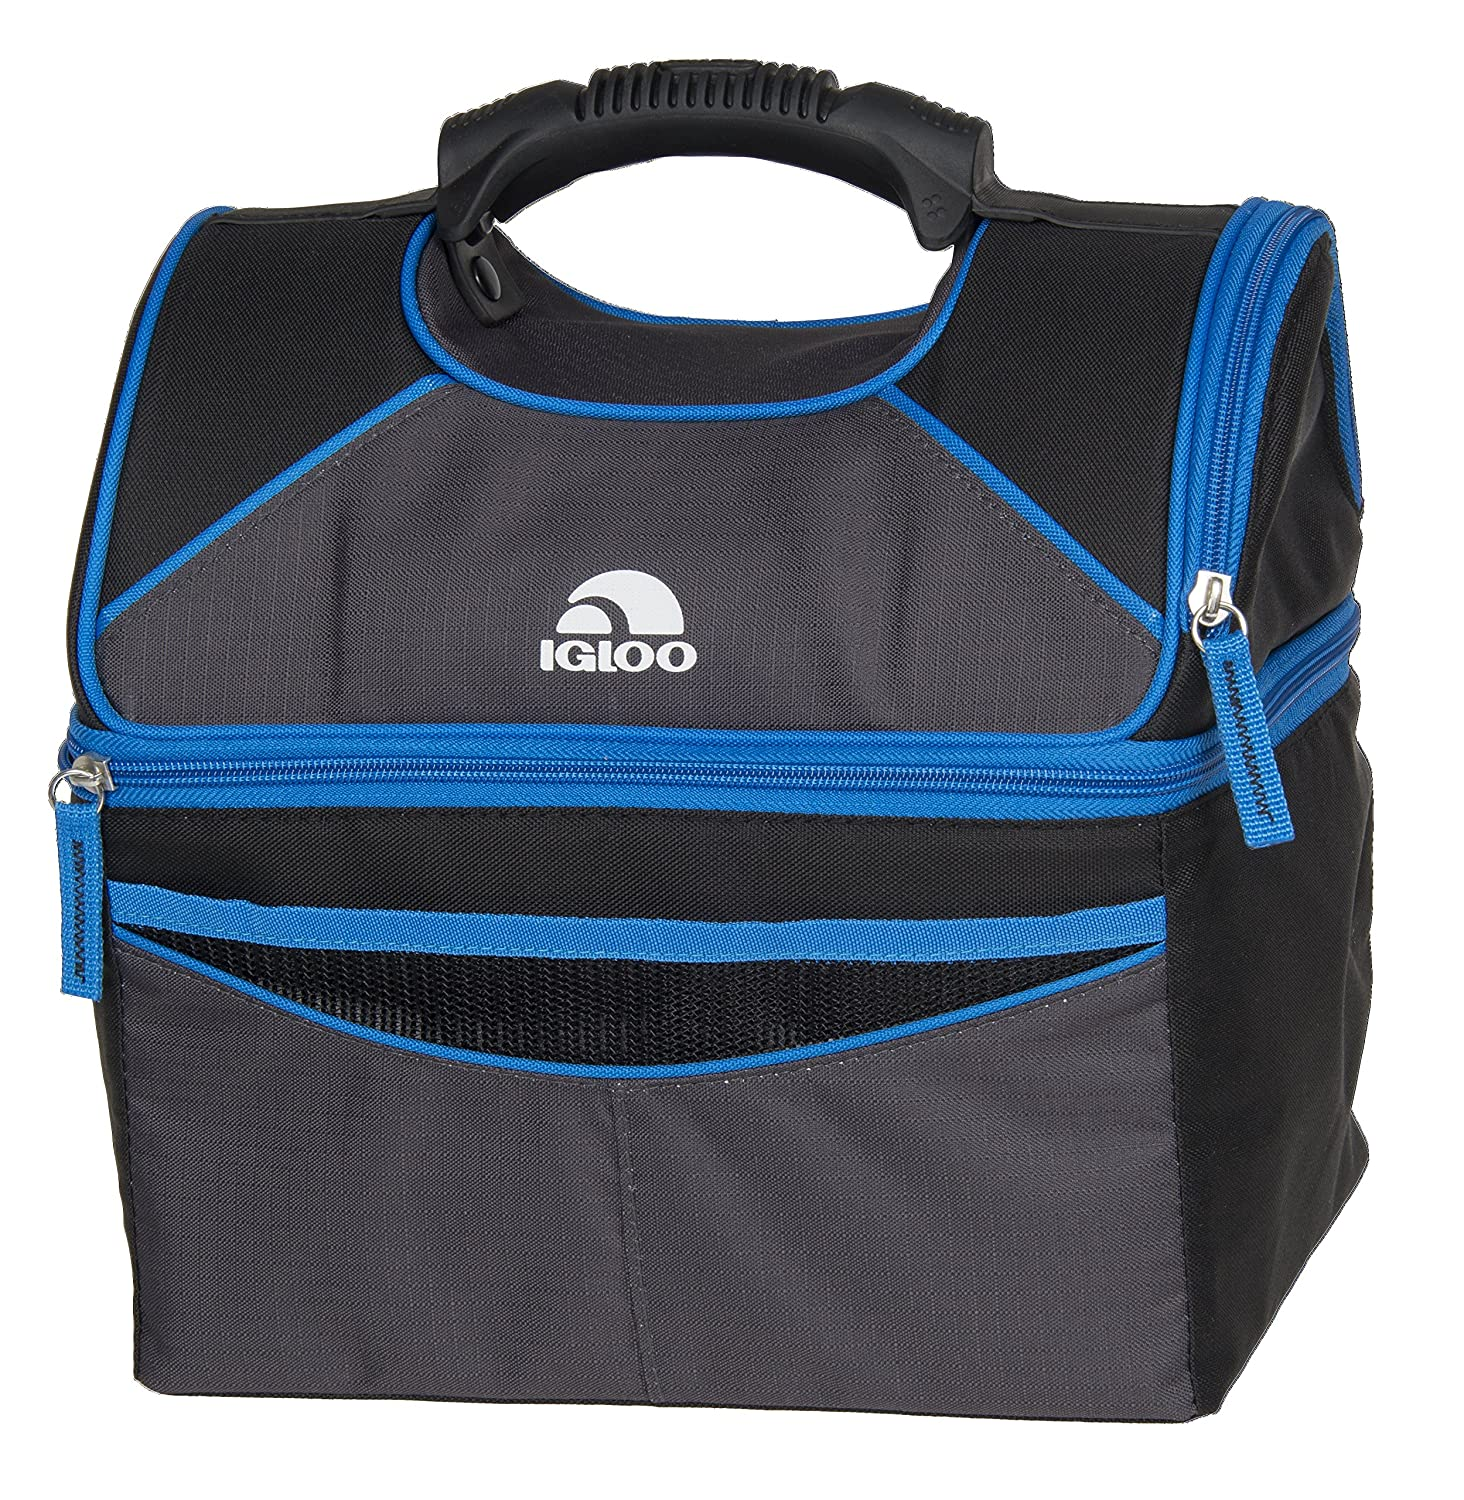 Insulated Bag Cooler Playmate Gripper 9 Igloo